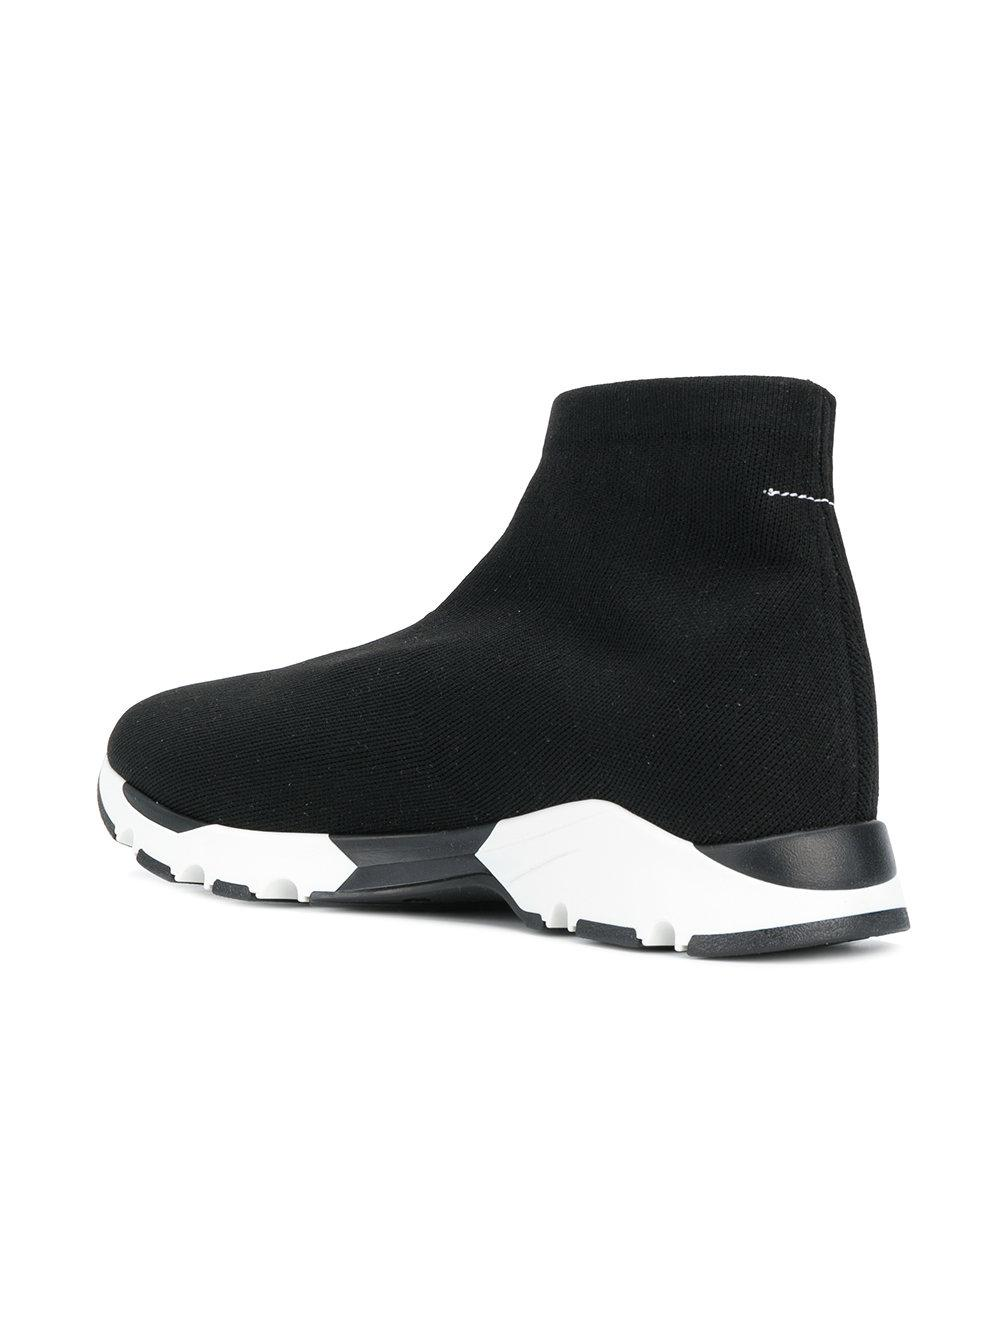 panelled sock sneakers - Black Maison Martin Margiela